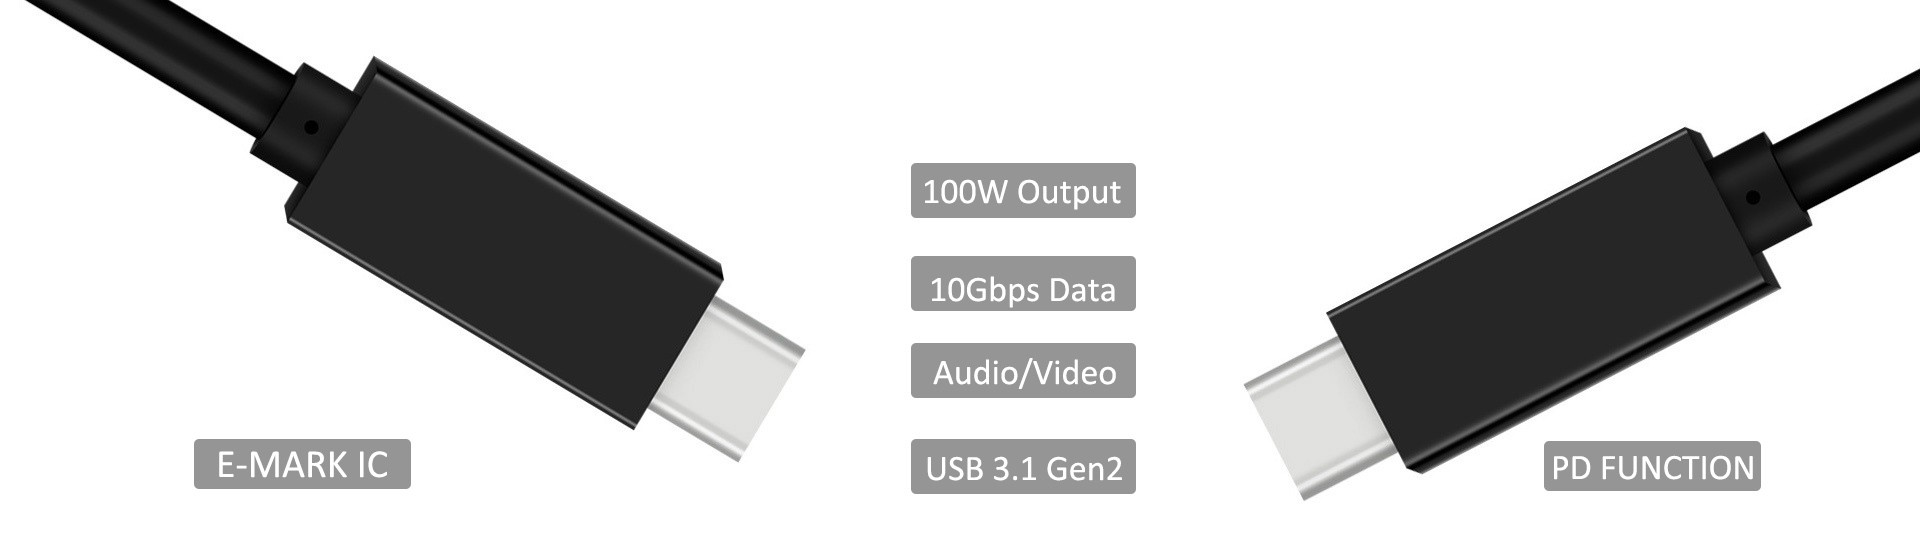 USB 3.1 Gen2 Type C Full Function PD Cable